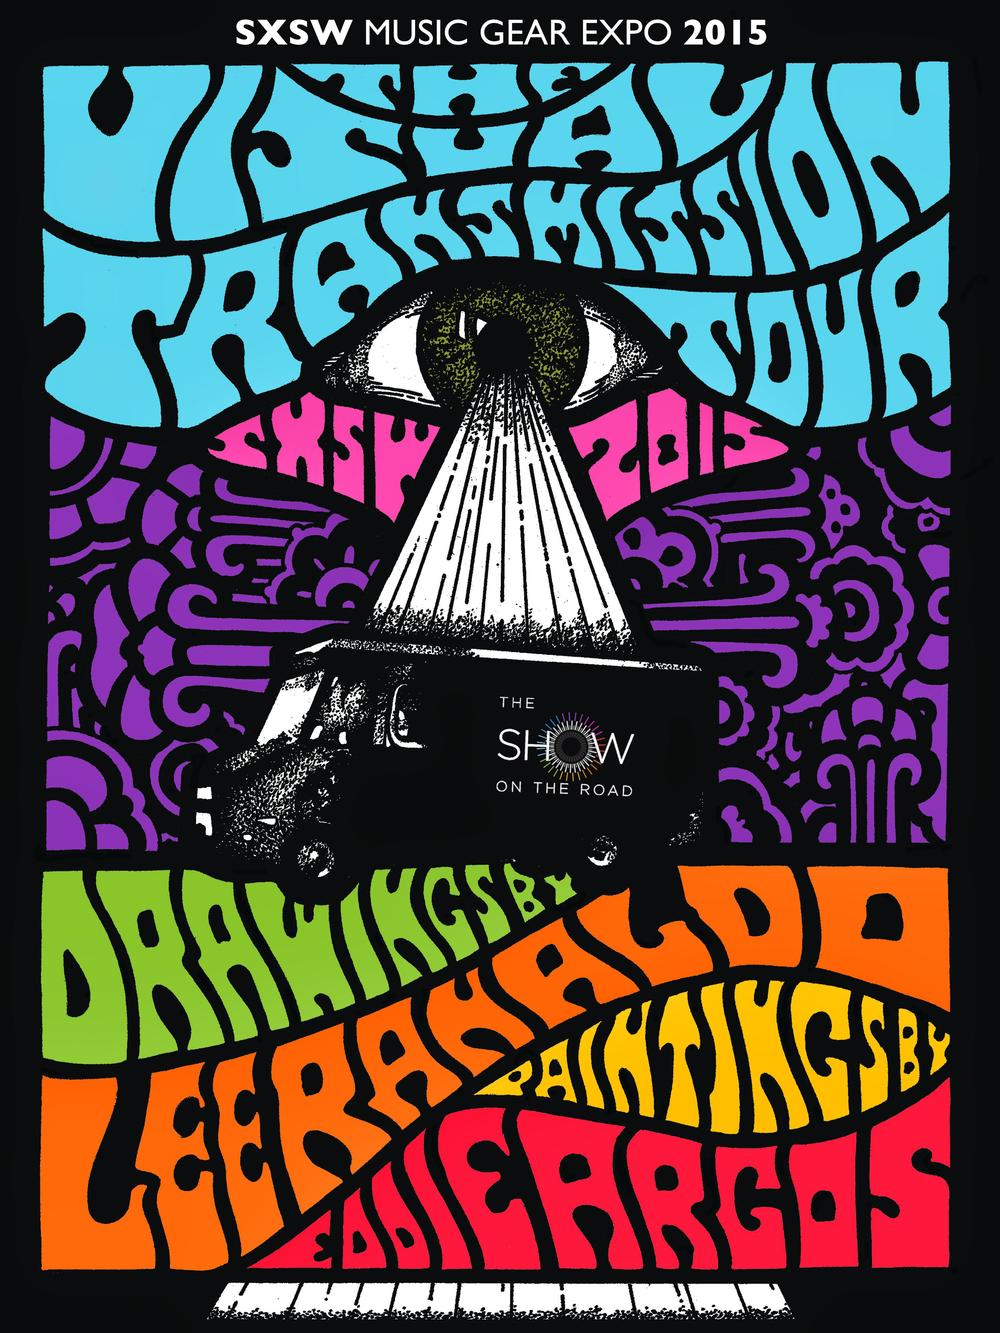 poster was designed by christian bland of the black angels.